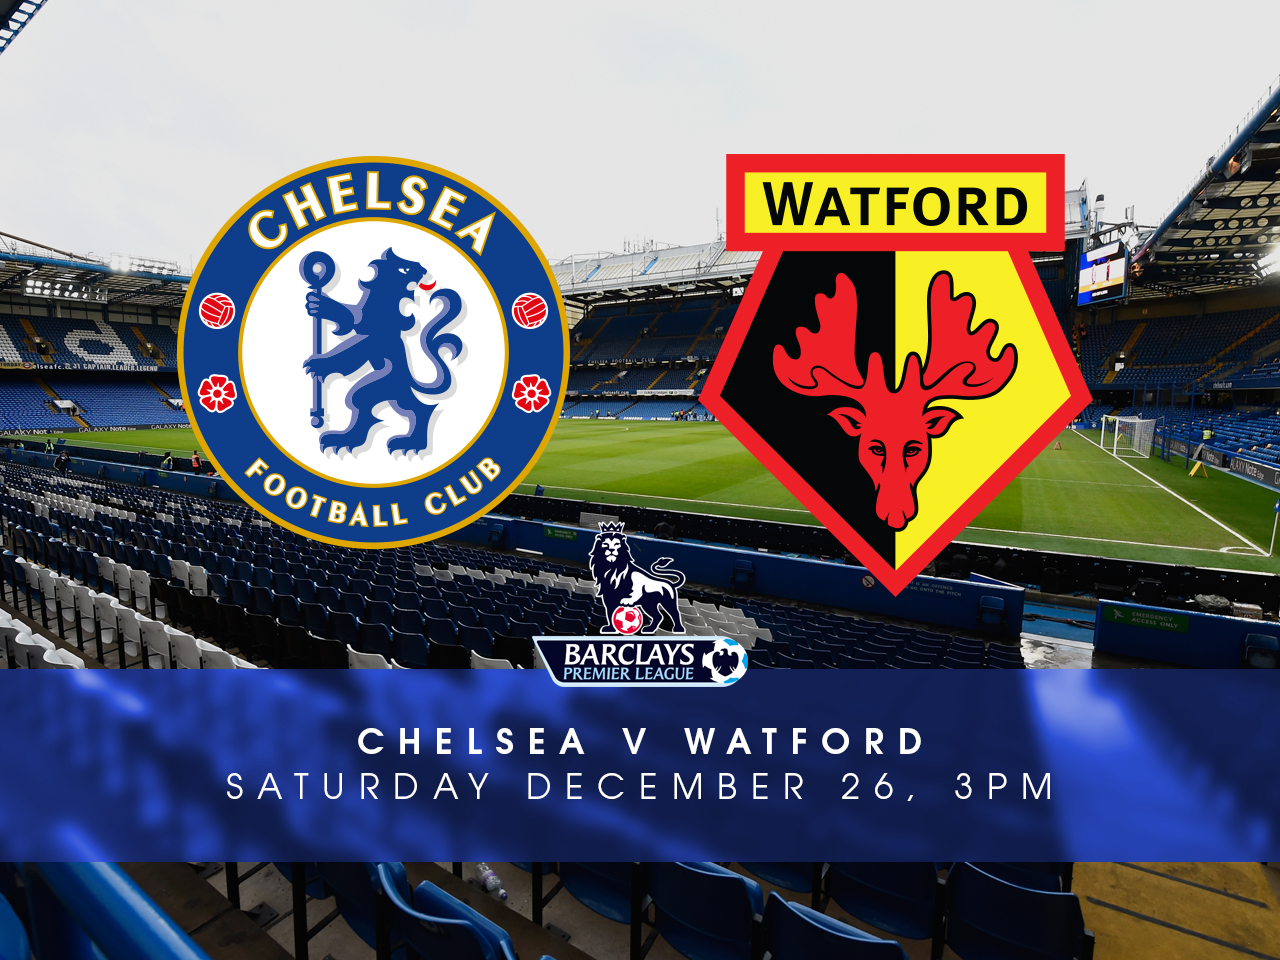 LINE-UP: Chelsea team to play Watford